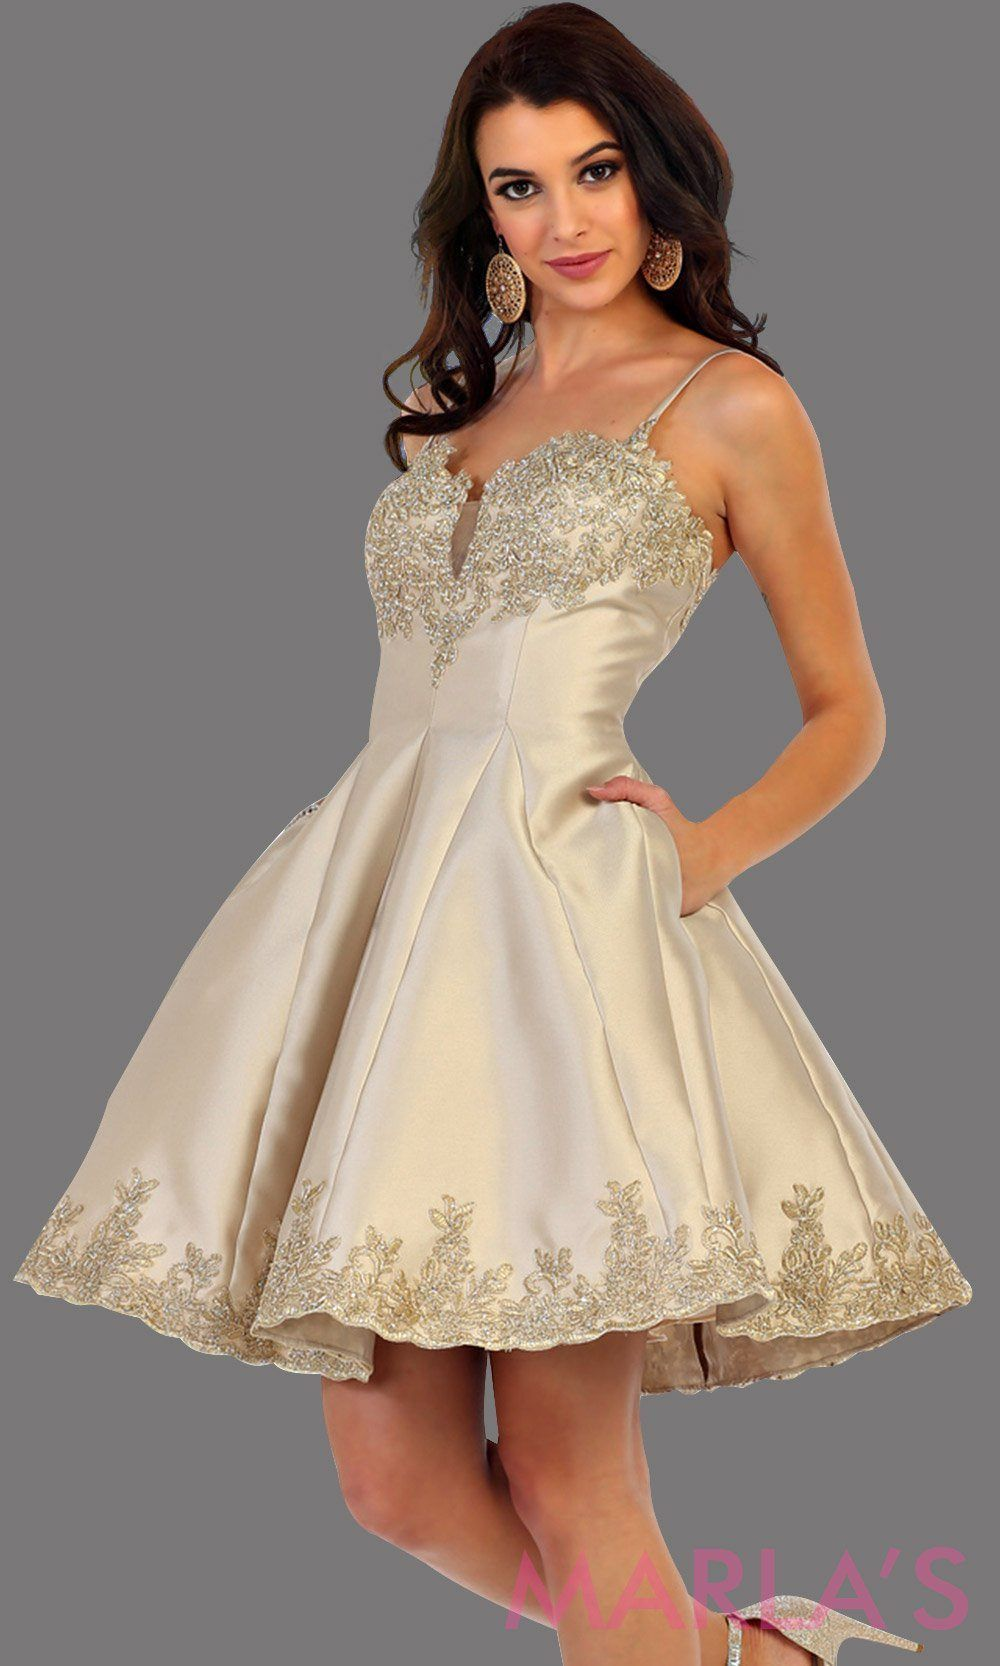 b2a7f288e49 Short satin champagne grade 8 graduation dress with gold lace detail and  straps. This dress features pockets. Perfect light gold short prom dress